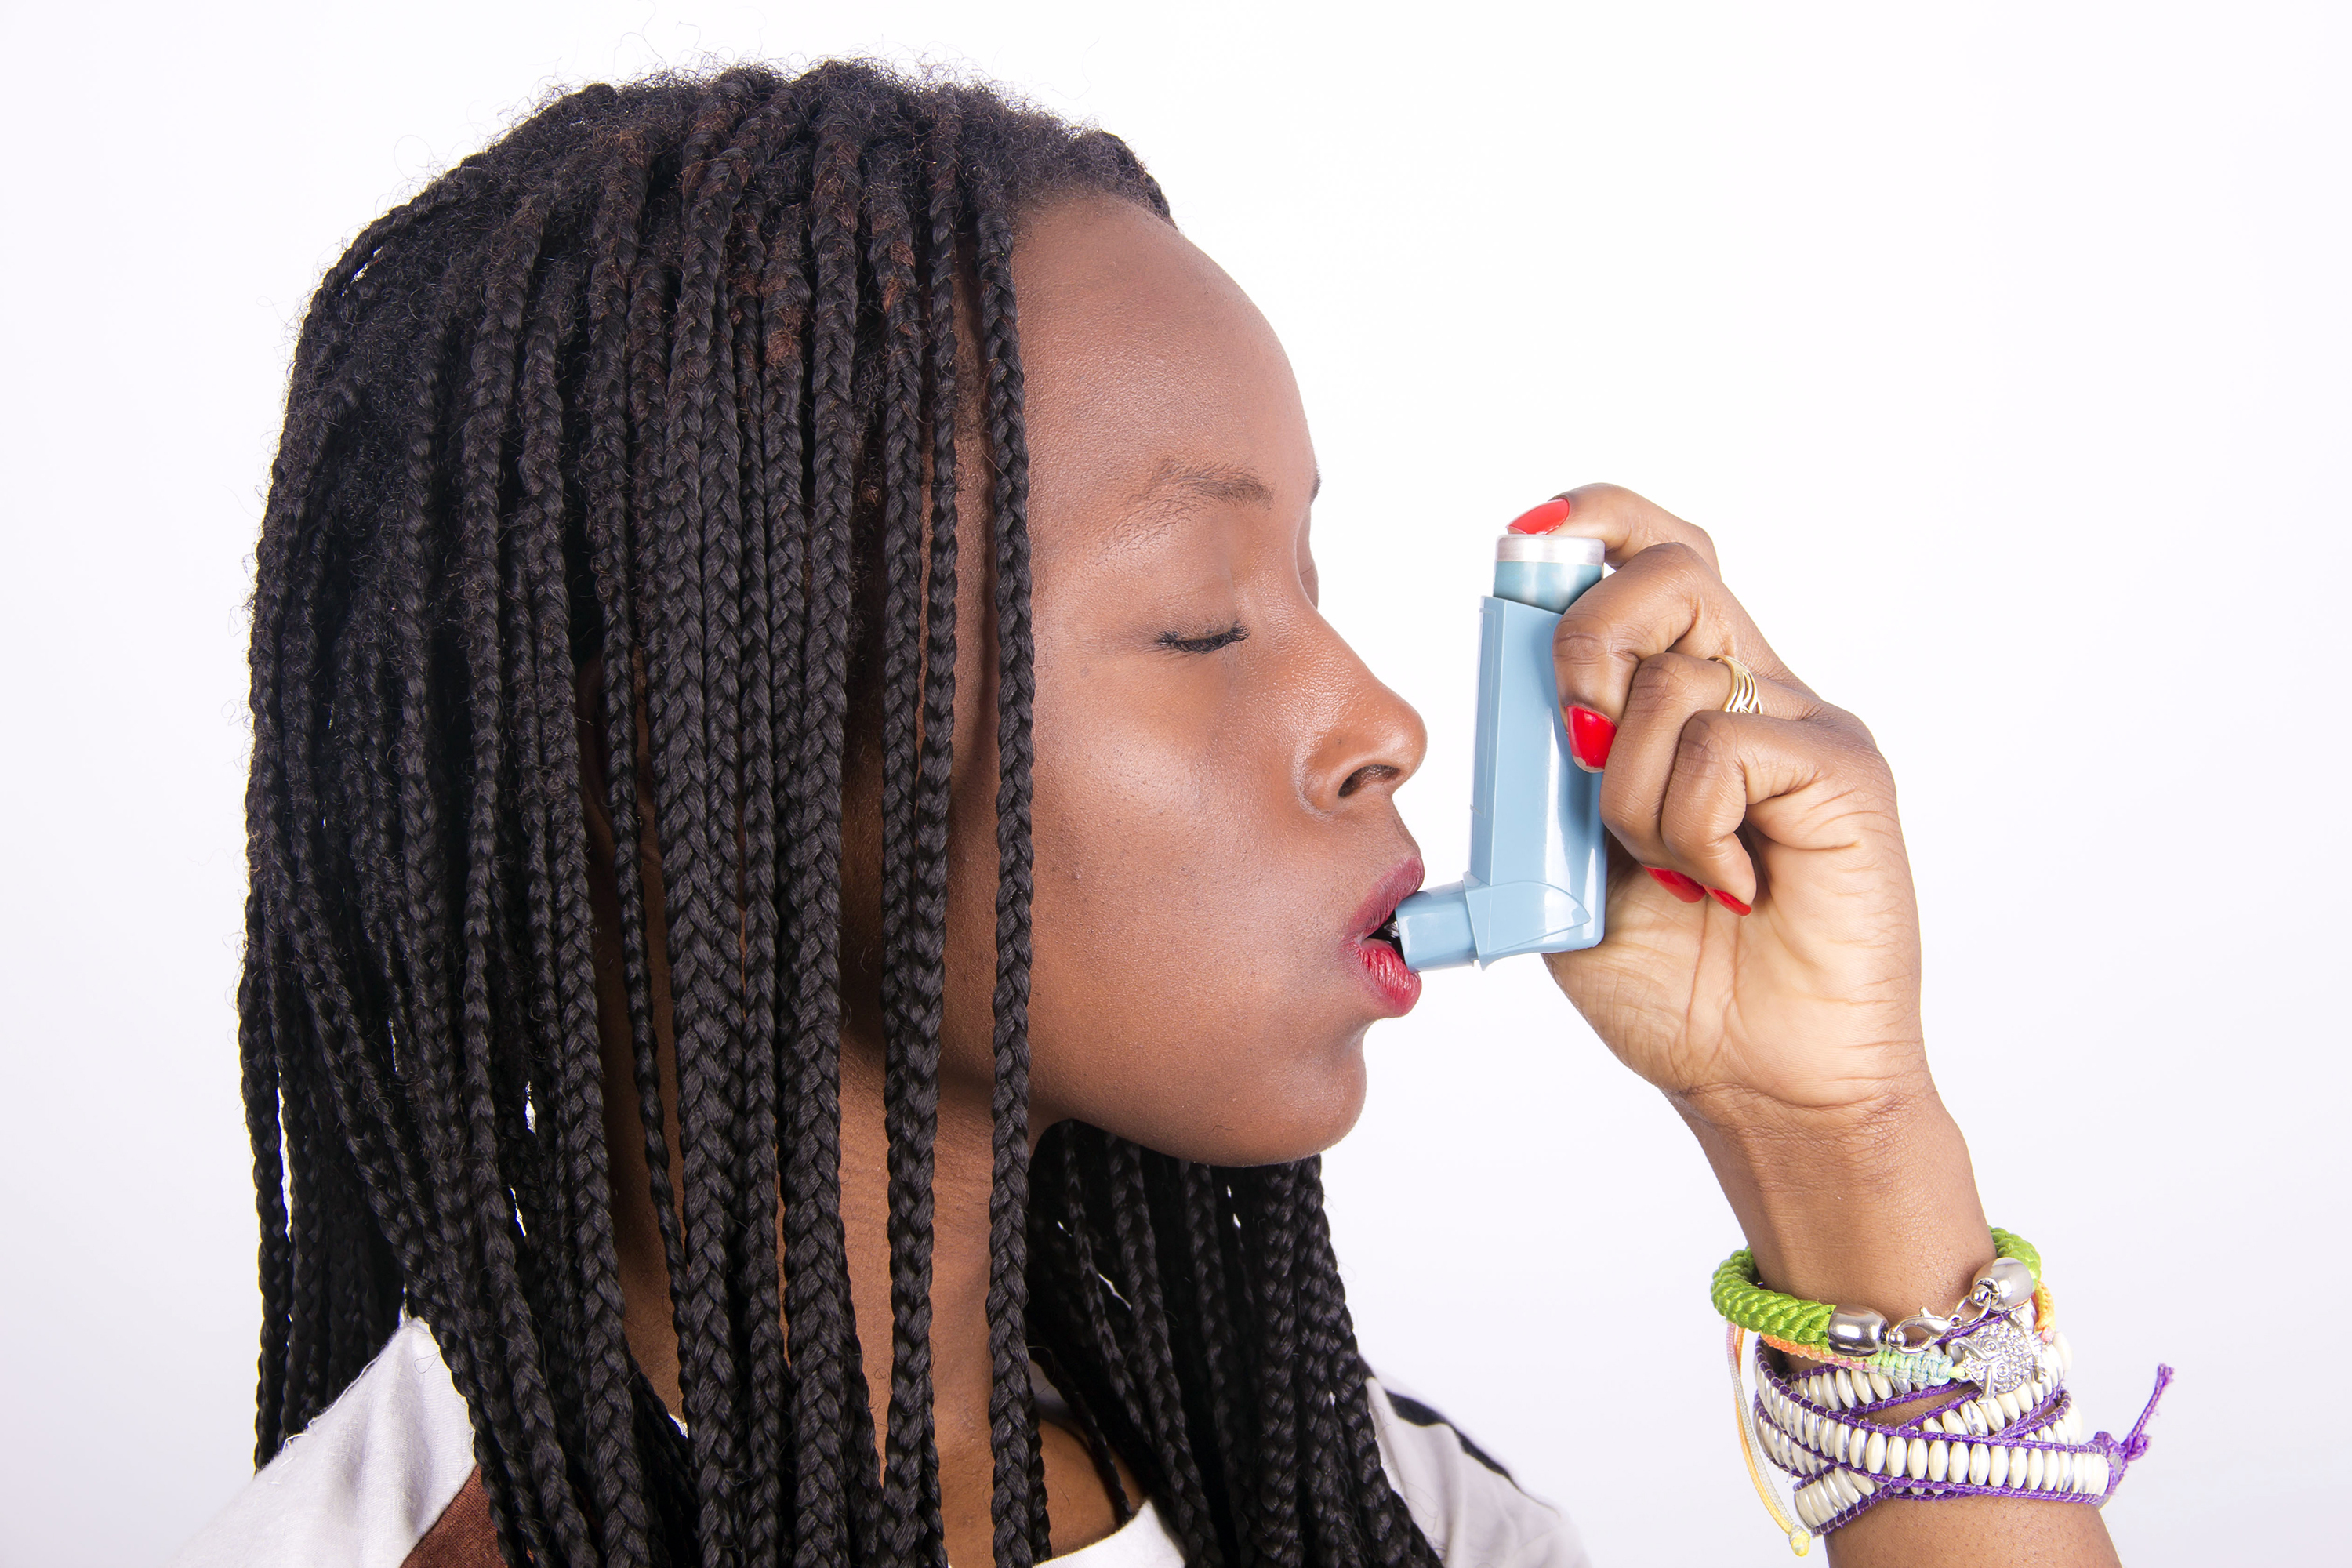 Study Tests Effectiveness of Omalizumab in Treating Perennial Severe Allergic Asthma